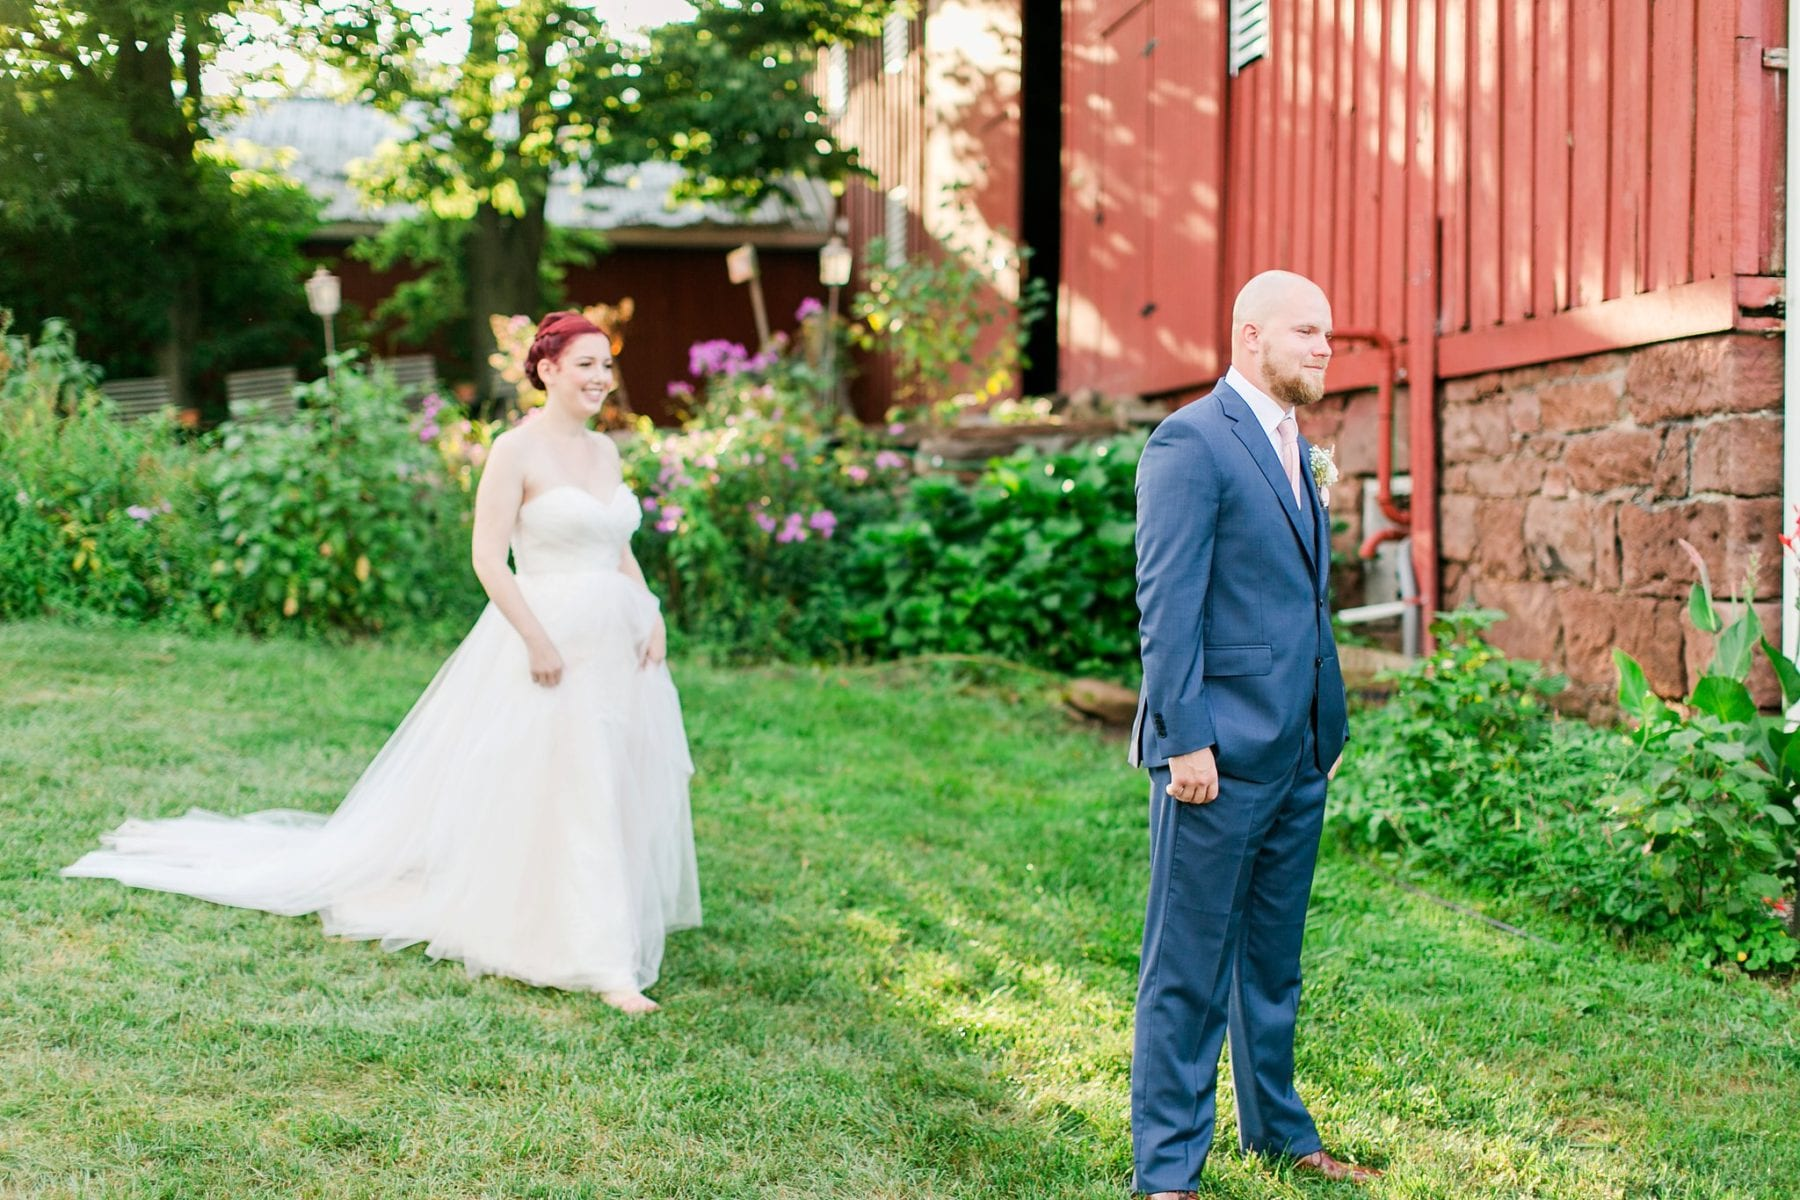 Rocklands Farm Wedding Virginia Wedding Photographer Megan Kelsey Photography Jessica & Jason-33.jpg